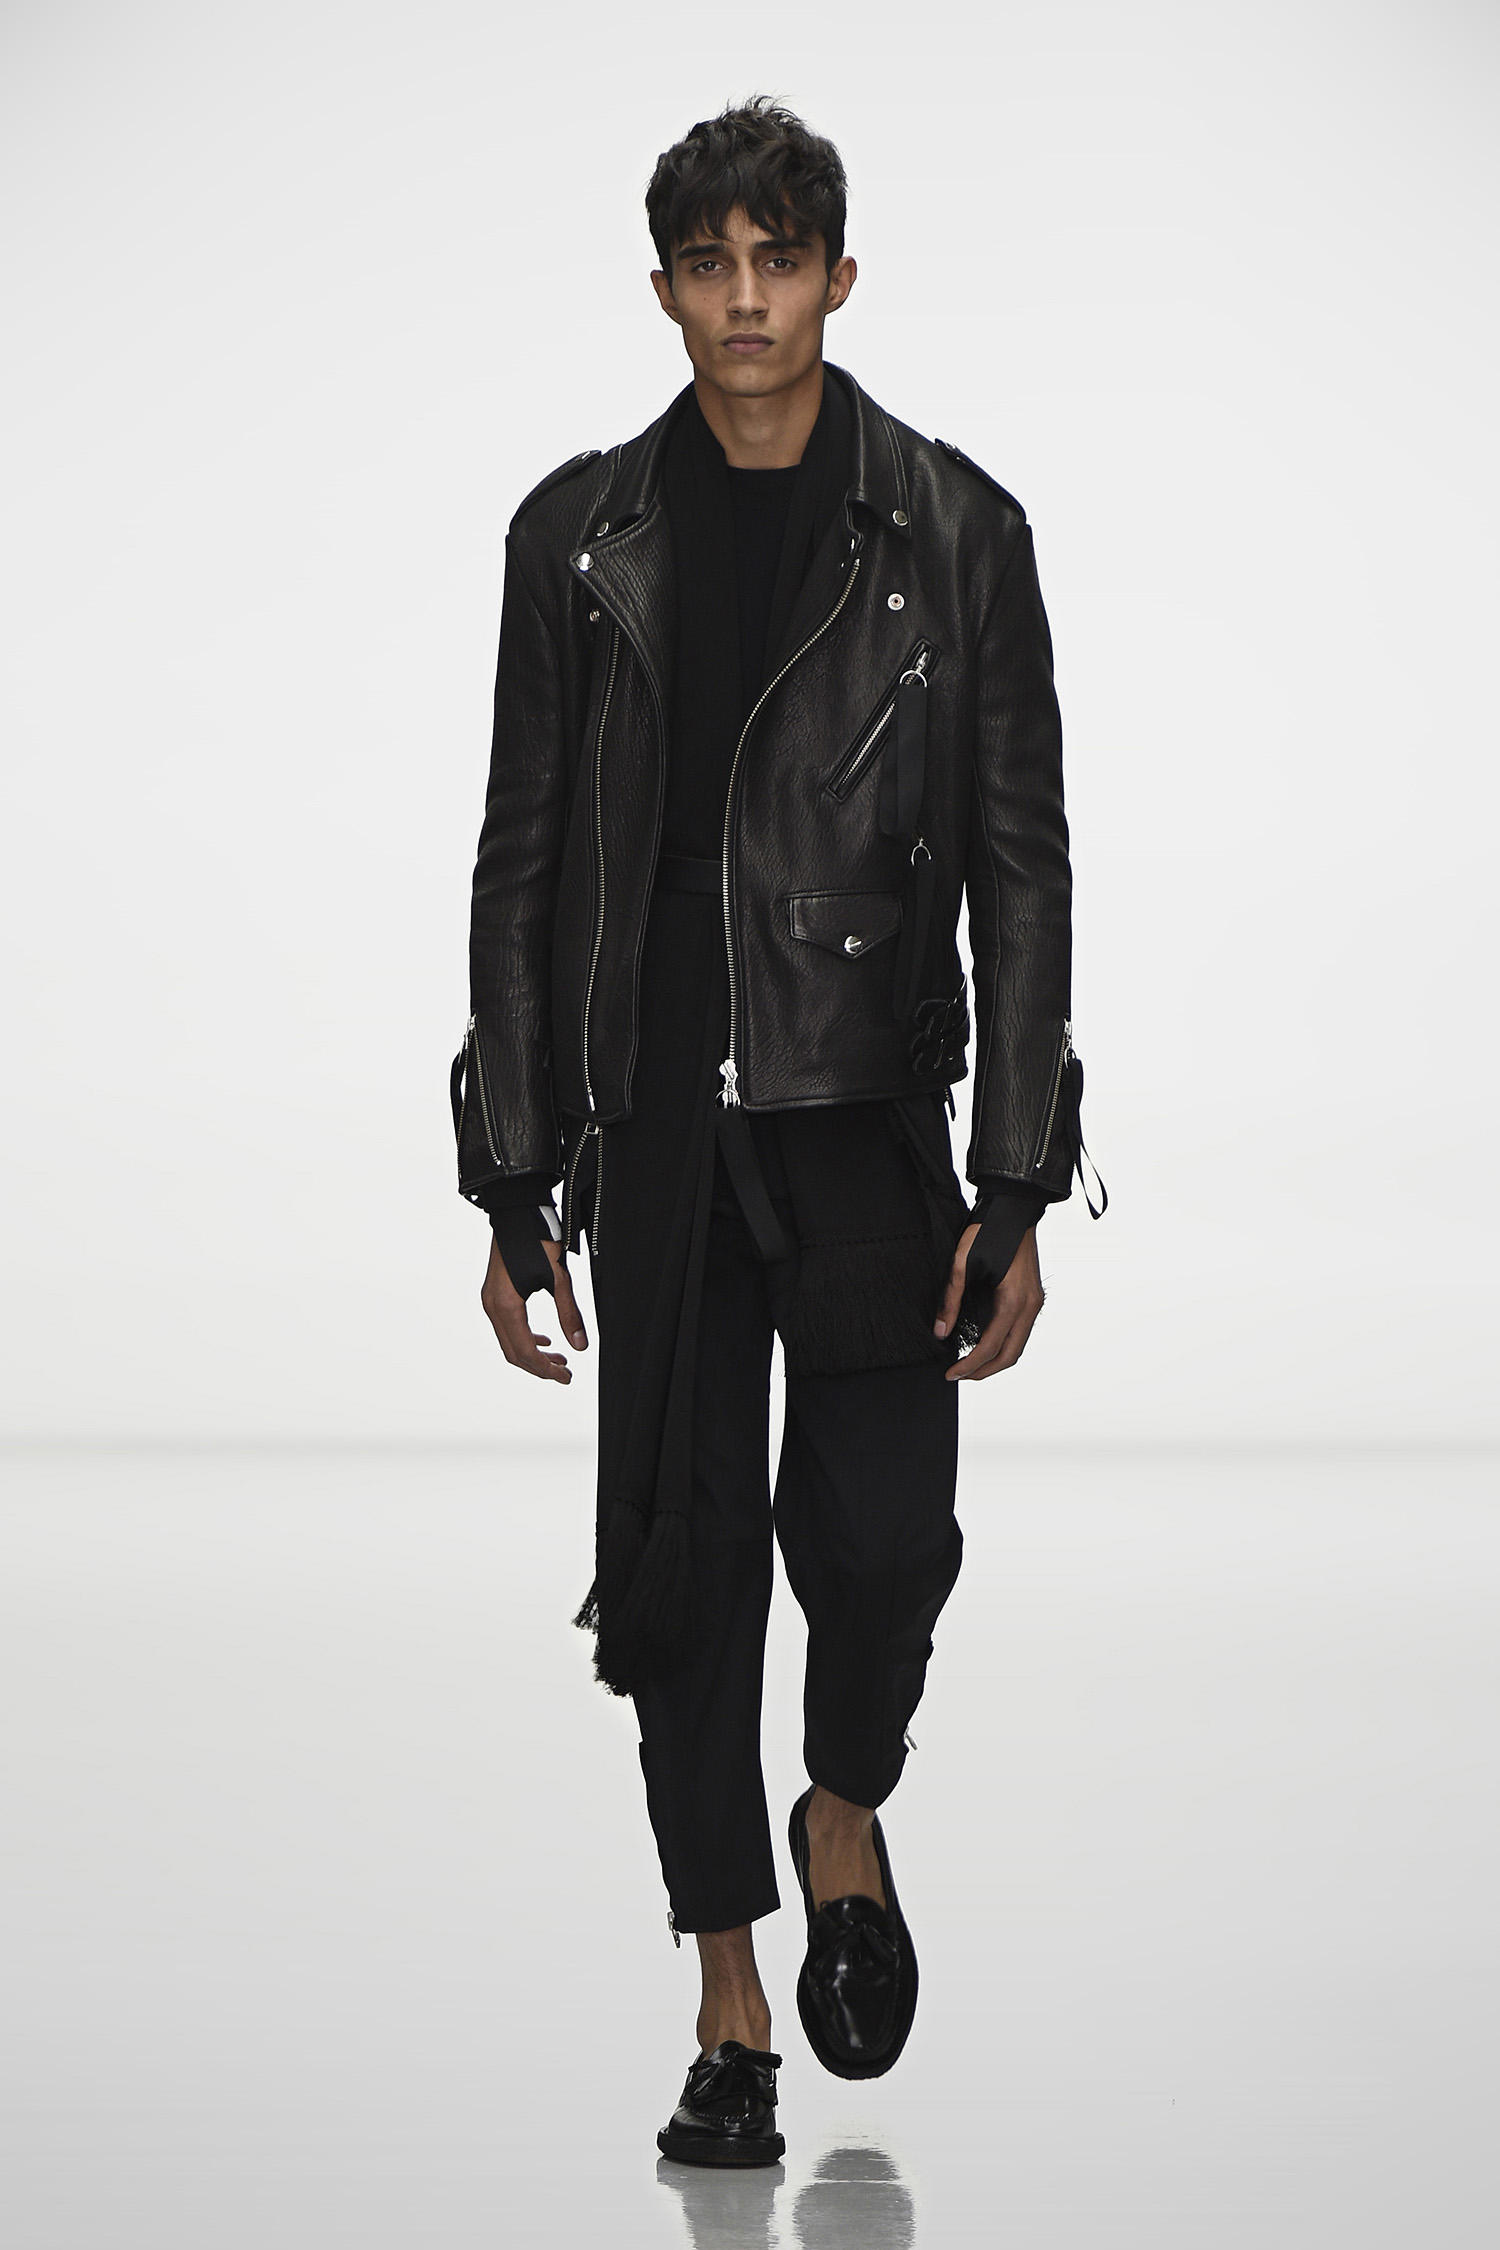 Callusing's photos in Leather Jackets:  Post Pictures of the Best You've Seen/Owned?